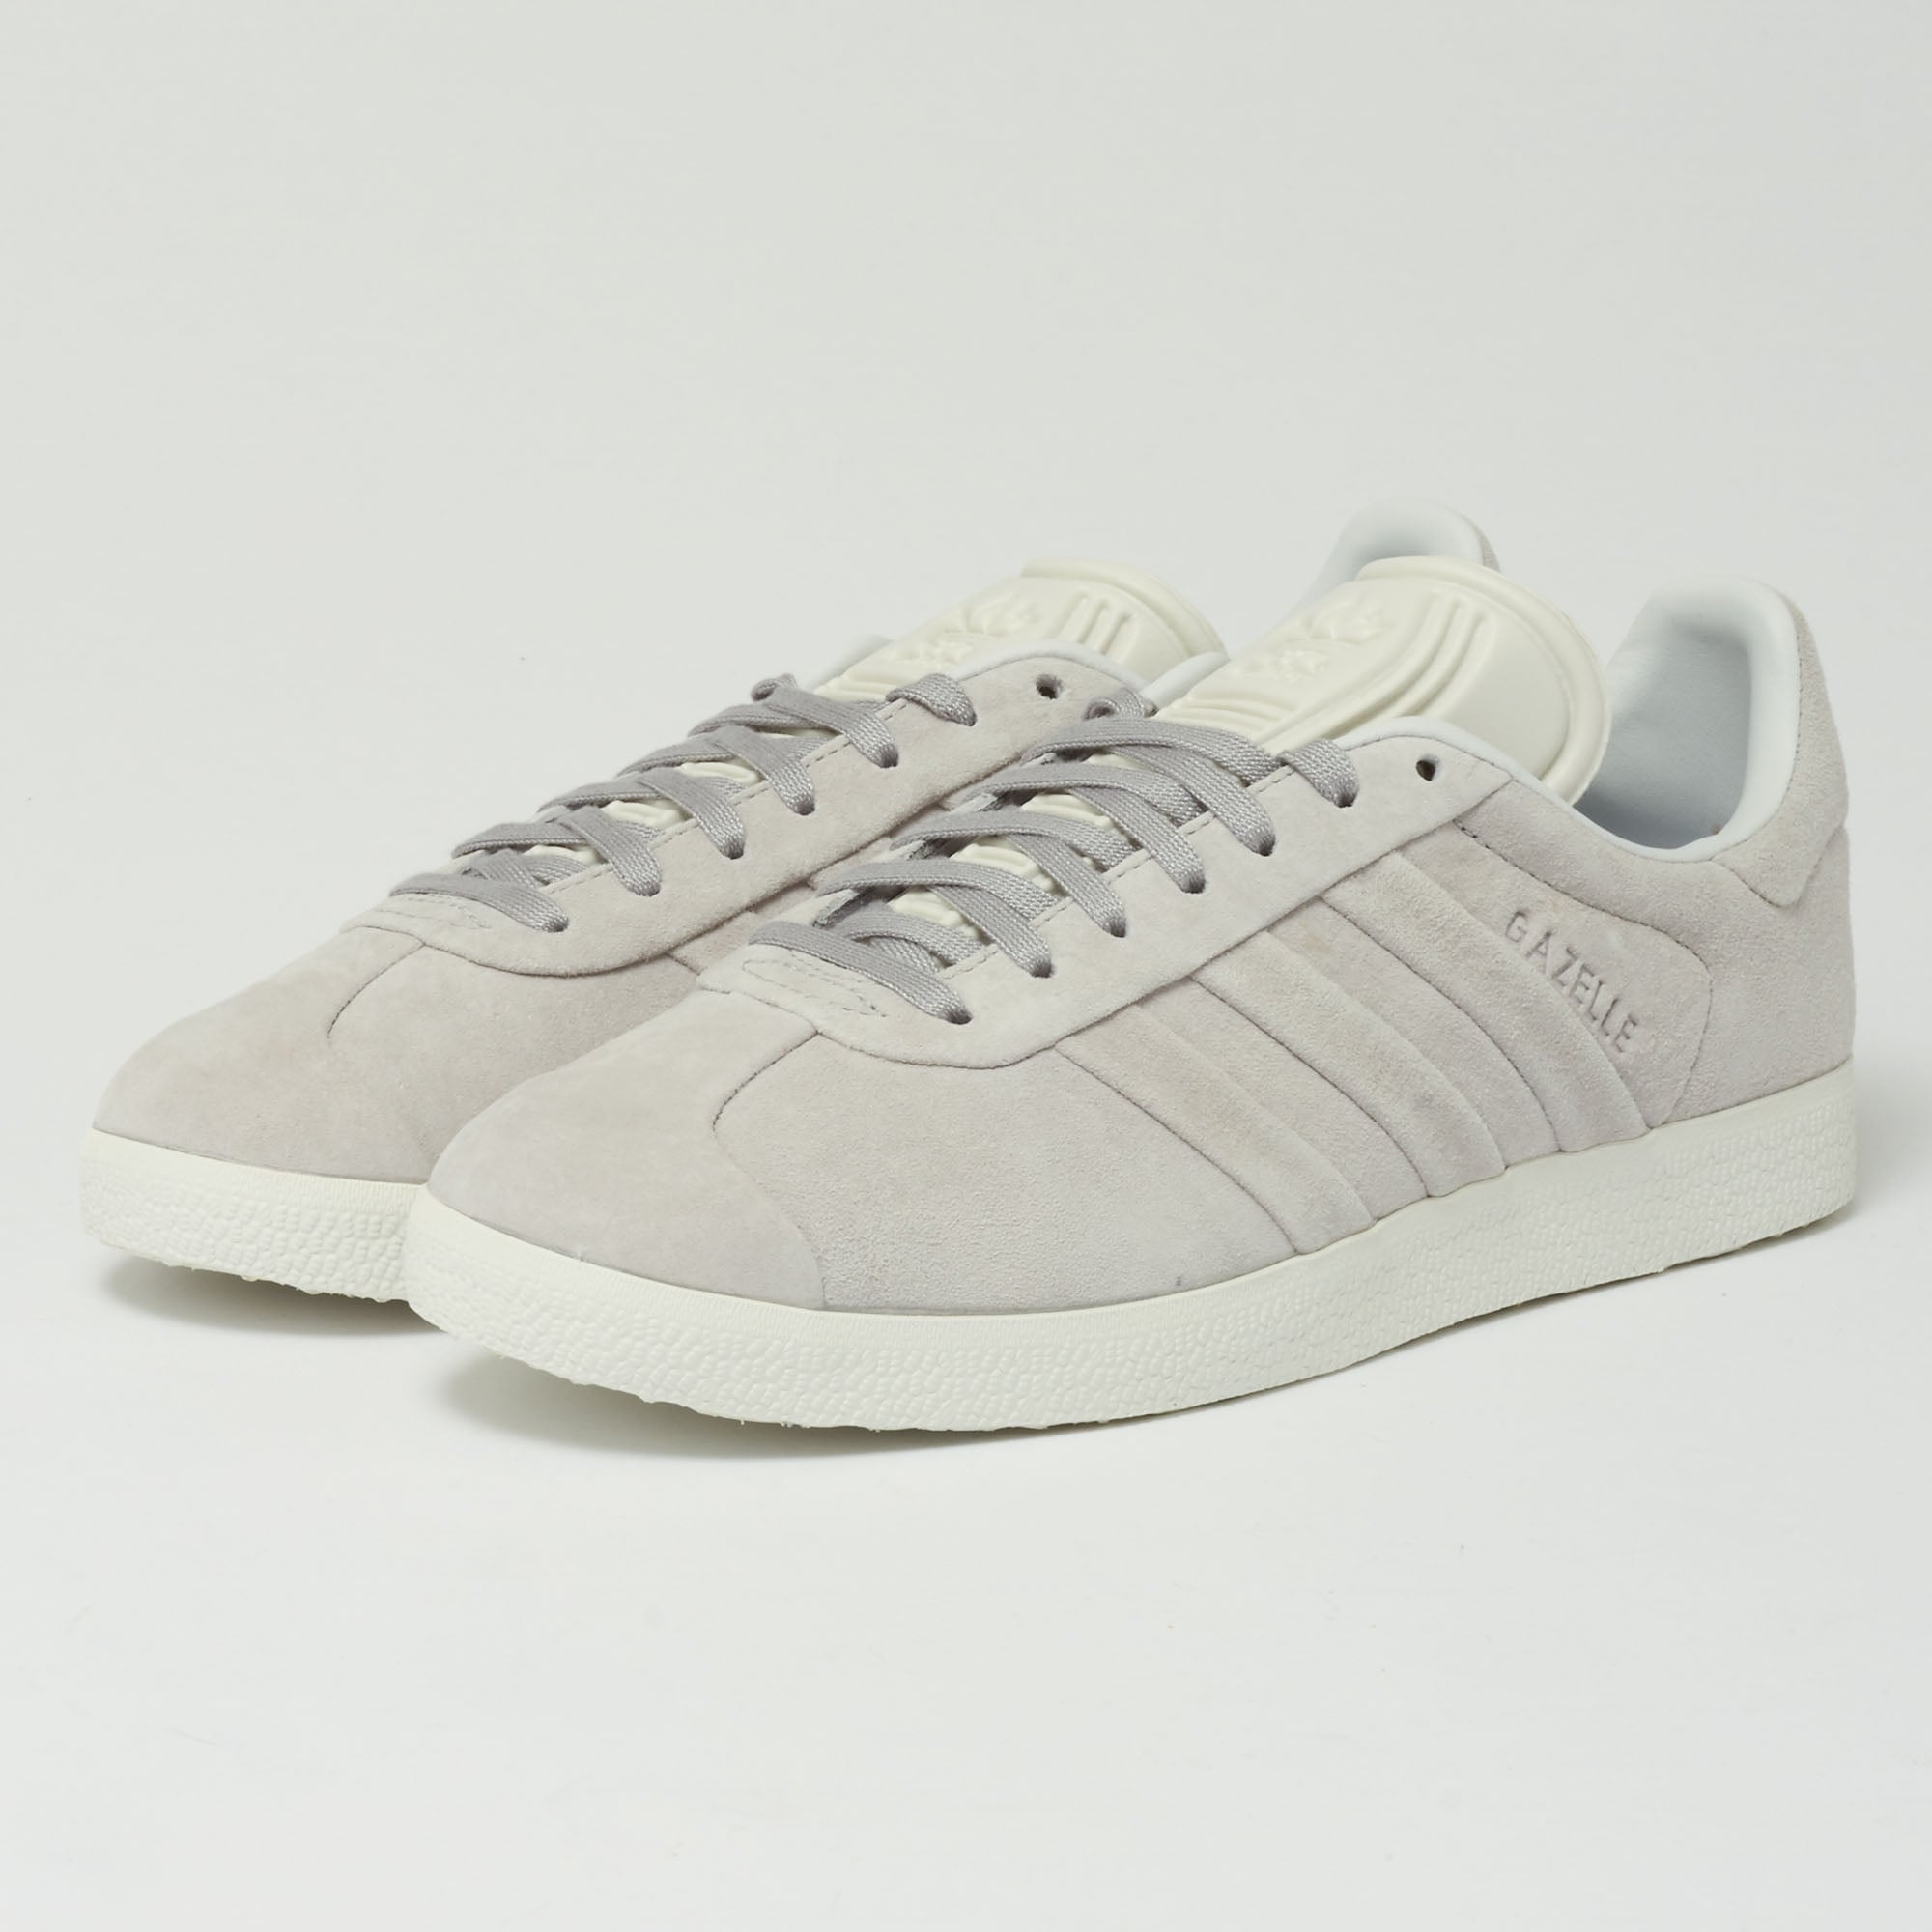 release date 41bcb 3b155 Gazelle Stitch   Turn - Grey Two